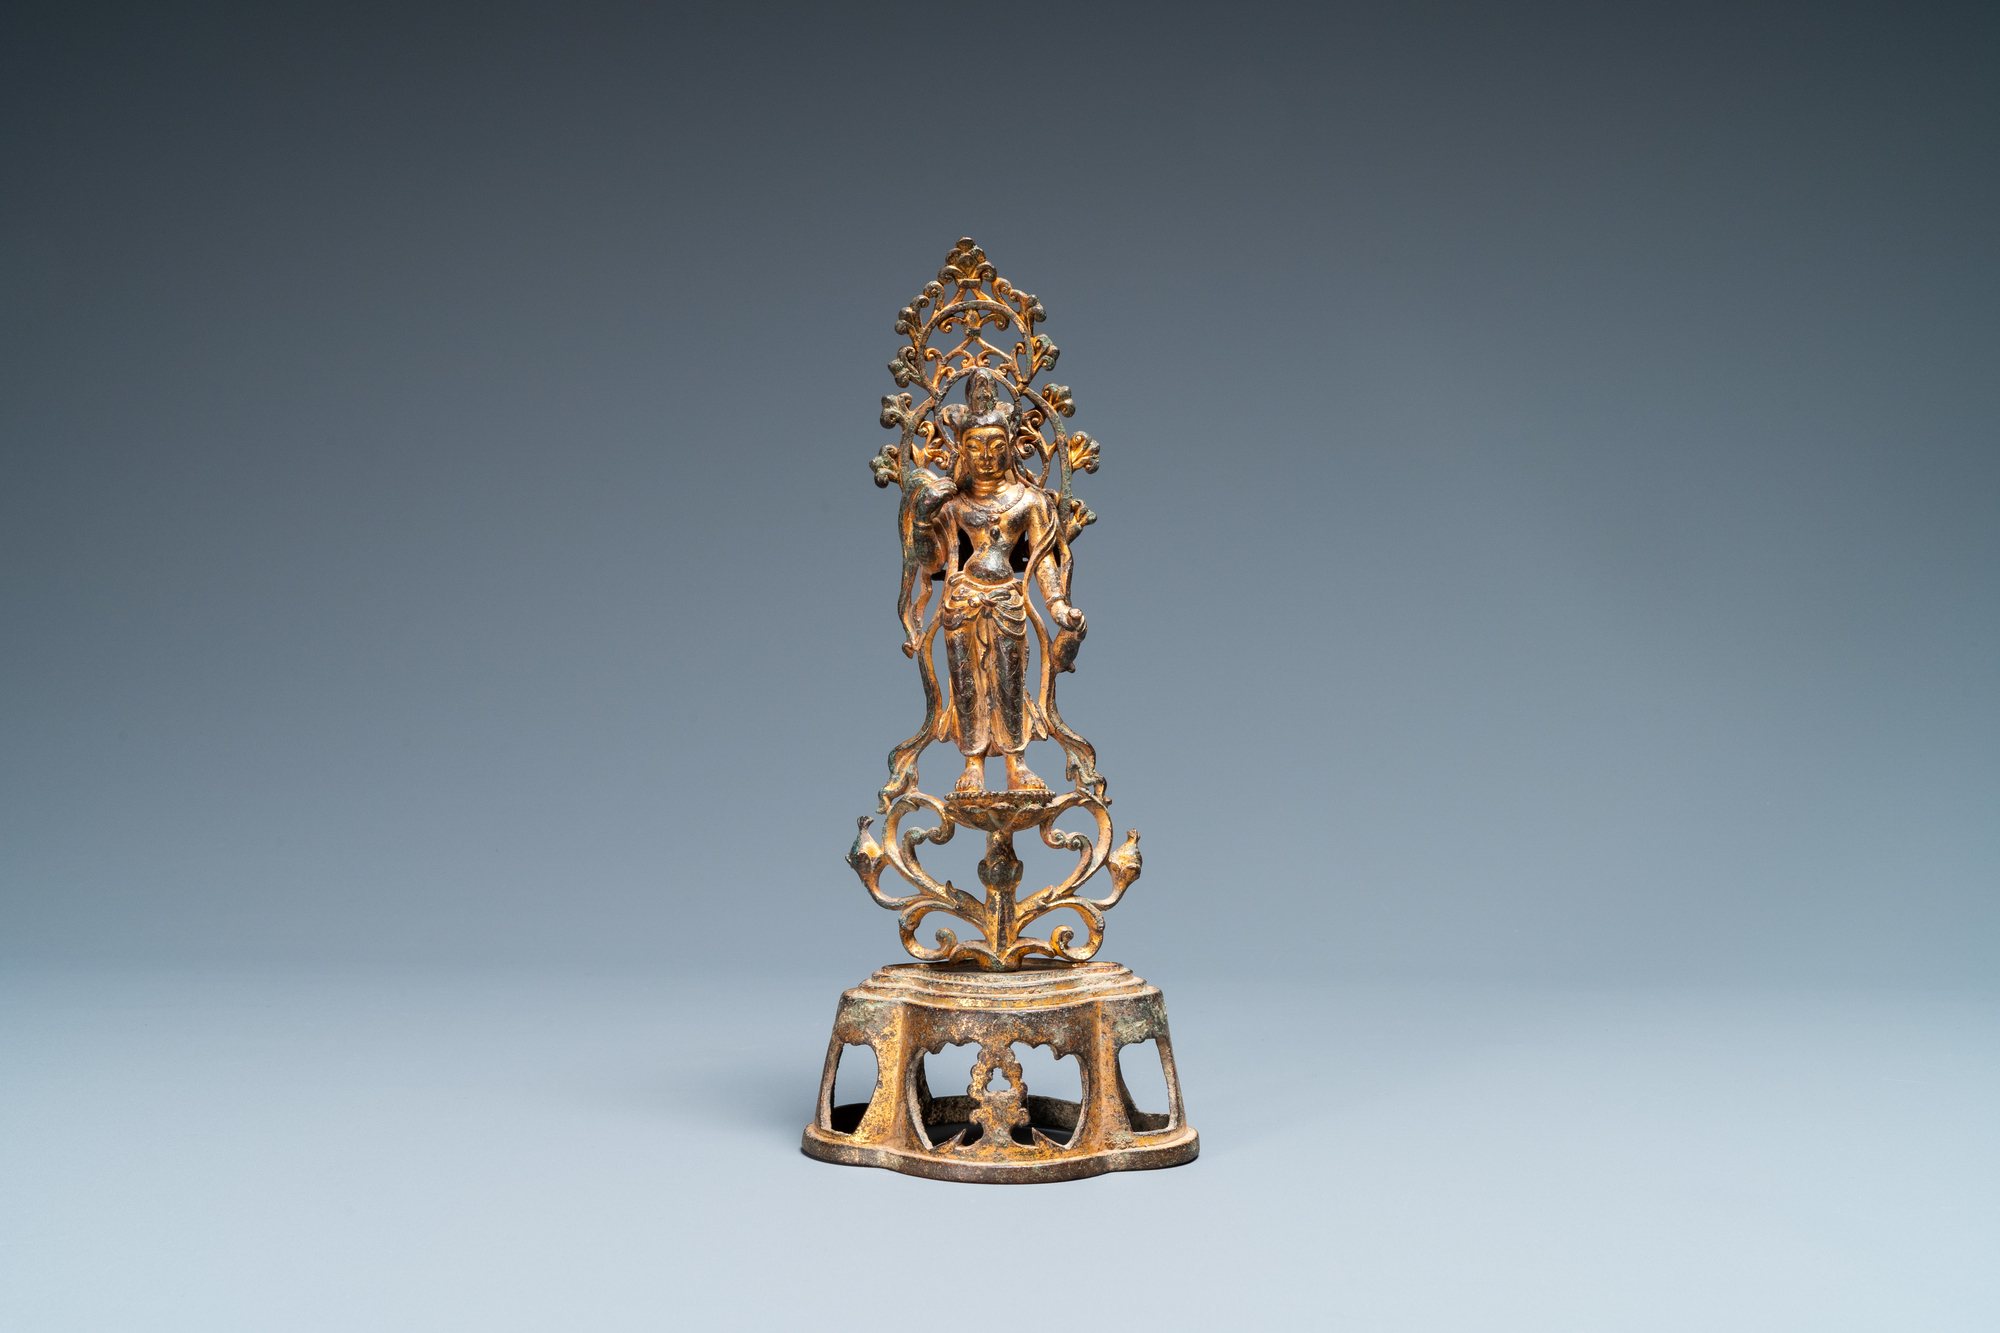 A Chinese gilt bronze figure of Buddha standing, probably Northern Wei dynasty - Image 2 of 13